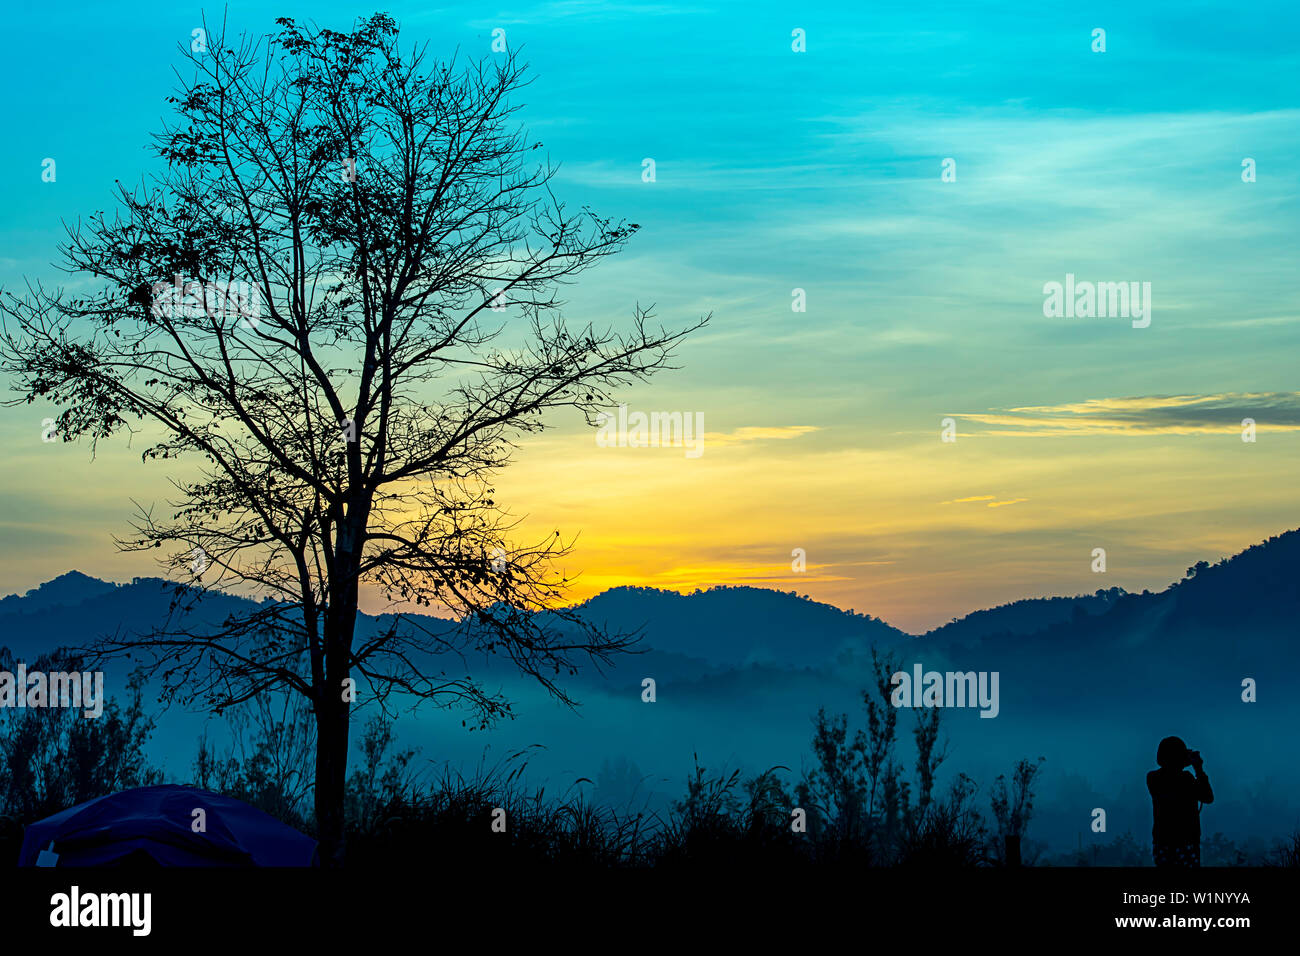 Tourists photograph the sunrise behind the mountains and the tree. Stock Photo